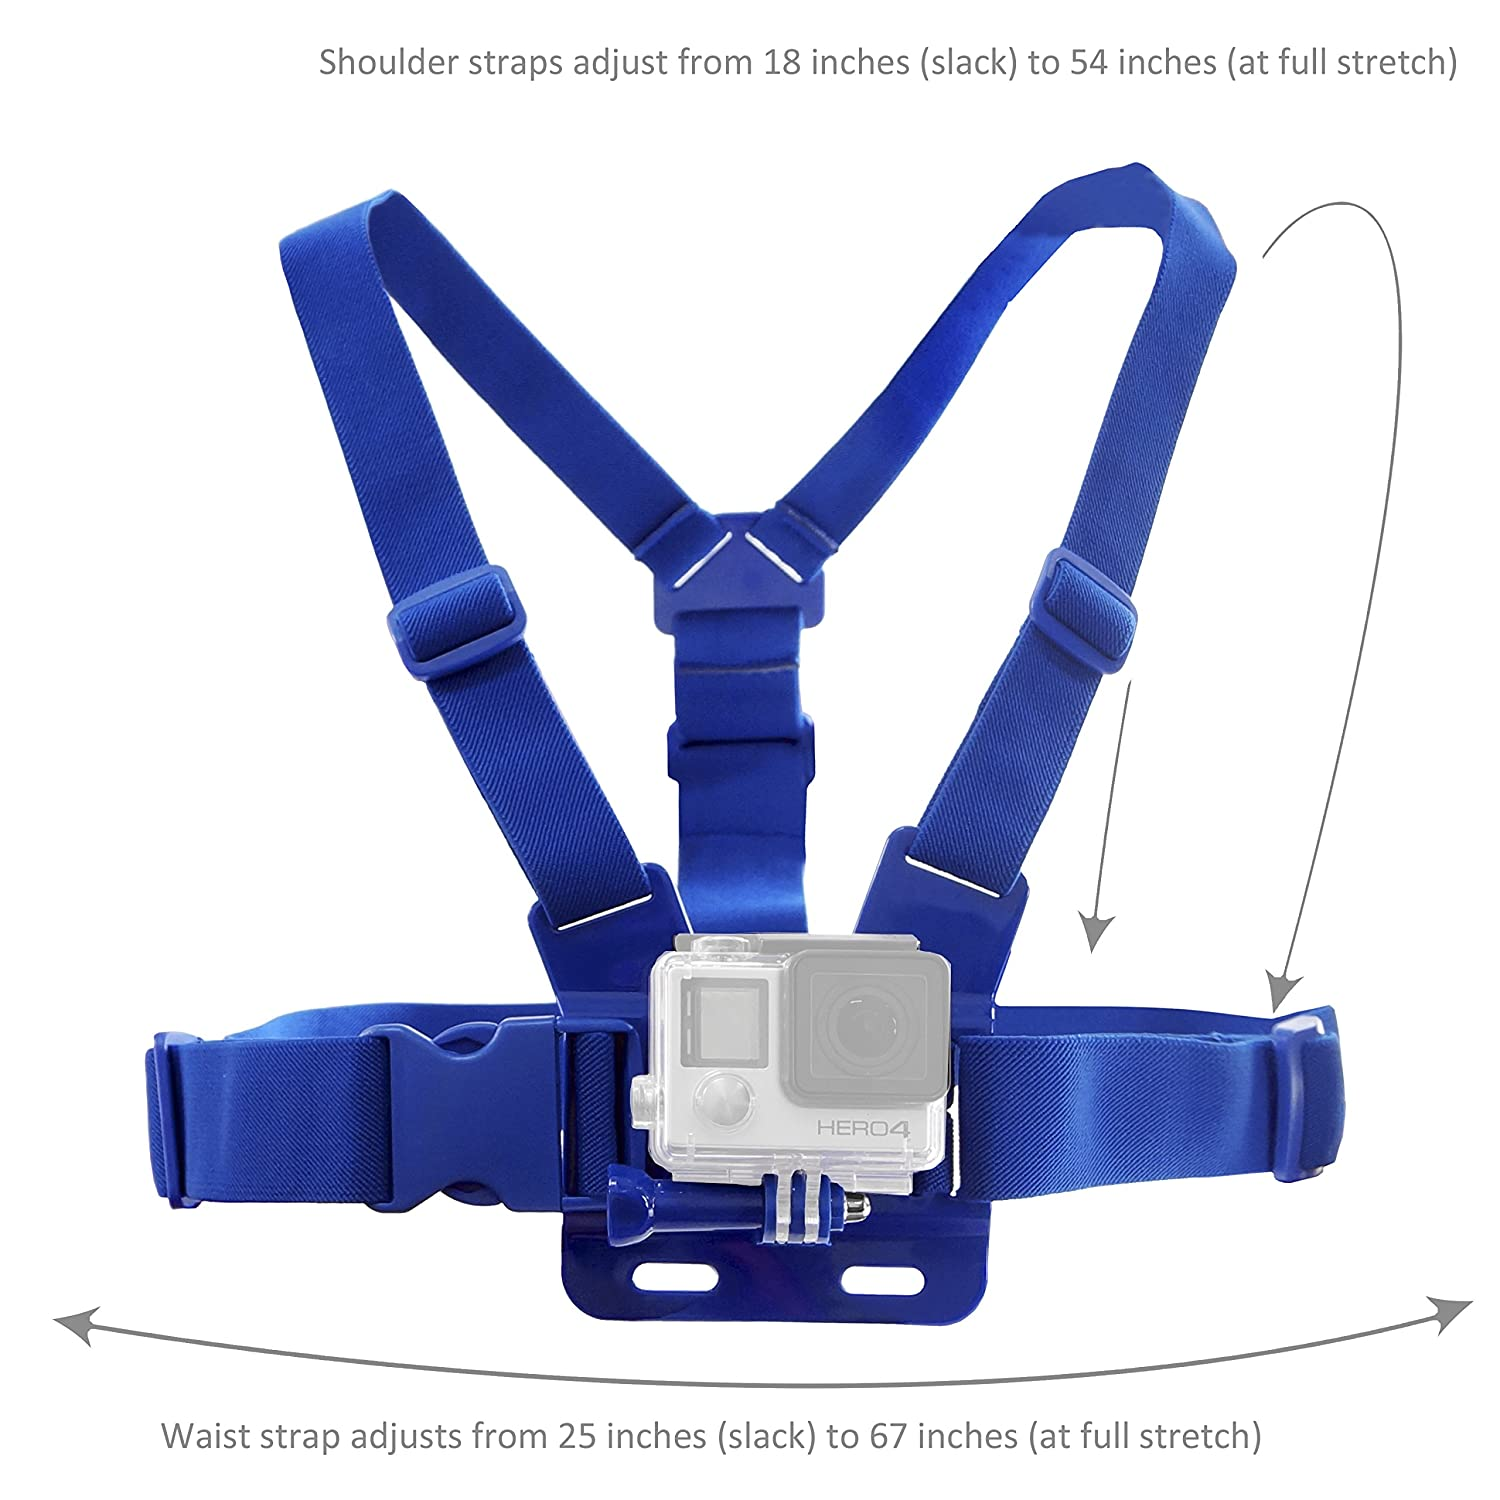 CamKix Chest Mount Harness for GoPro - Adjustable Chest Strap Compatible with GoPro Hero4, Hero3+, Hero3, Hero2, and Hero Camera - Also Includes 1 J-Hook, 1 Thumbscrew , 1 CamKix Drawstring Storage Bag gopro accessories head belt strap mount adjustable elastic for gopro hero 4 3 2 1 sjcam xiaomi yi camera vp202 free shipping